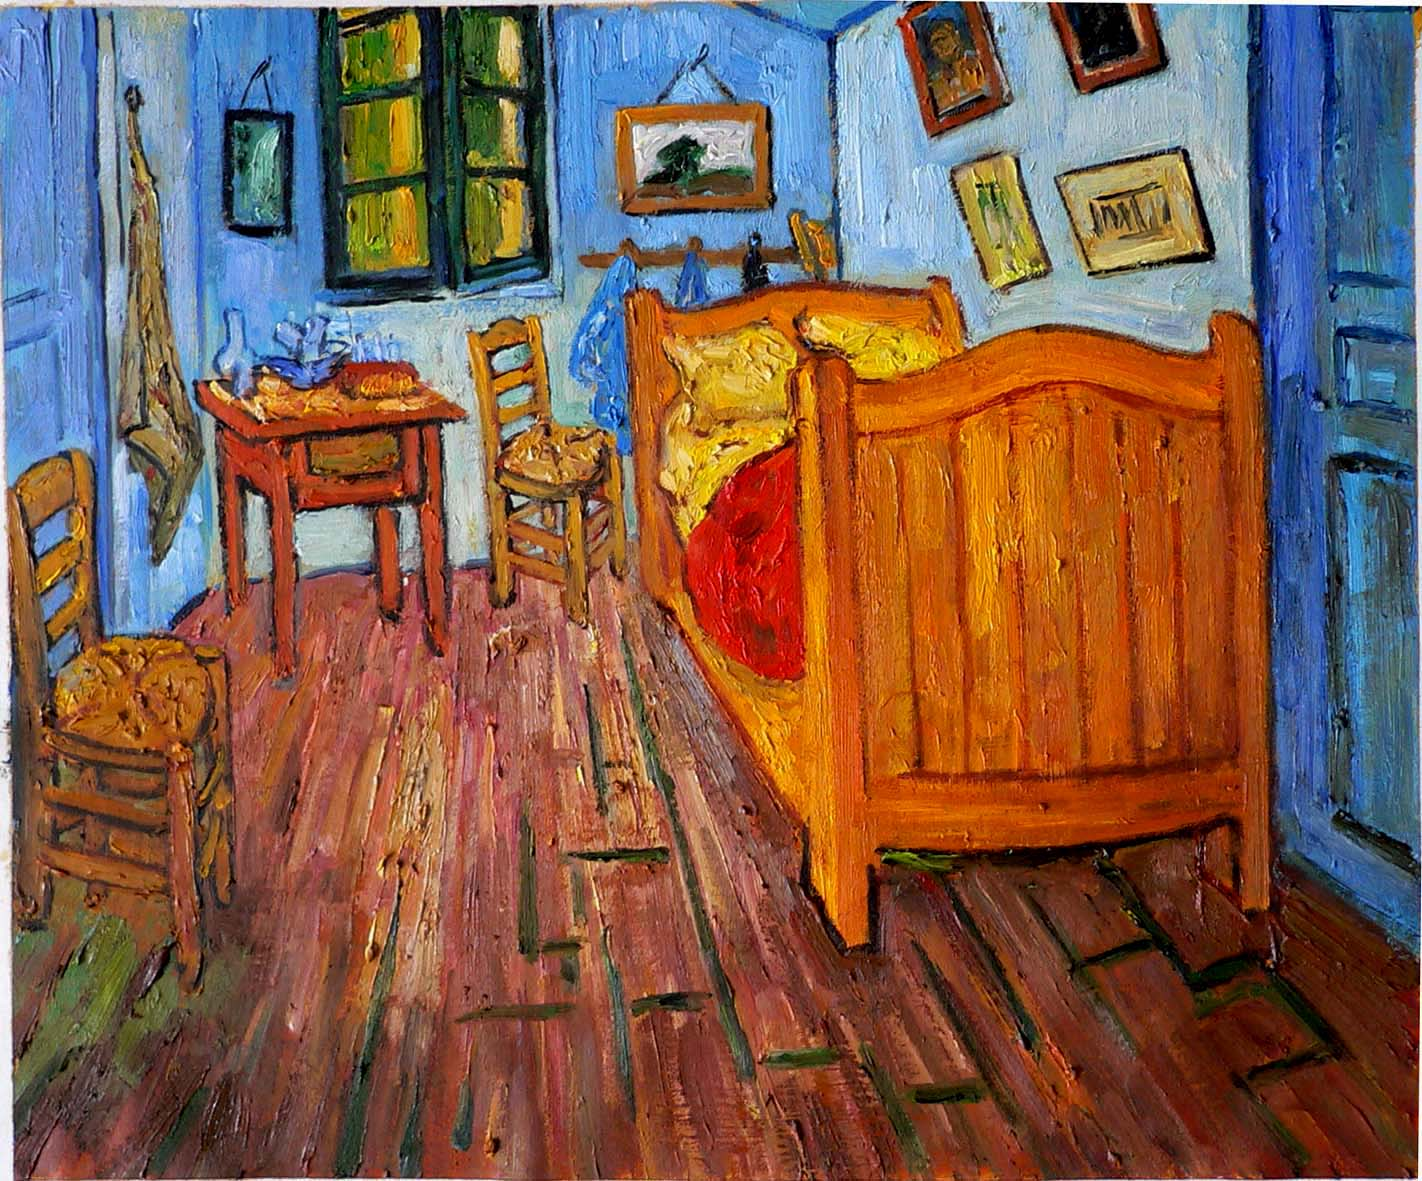 00 23868 vincent van gogh vincent bedroom in arles nn04